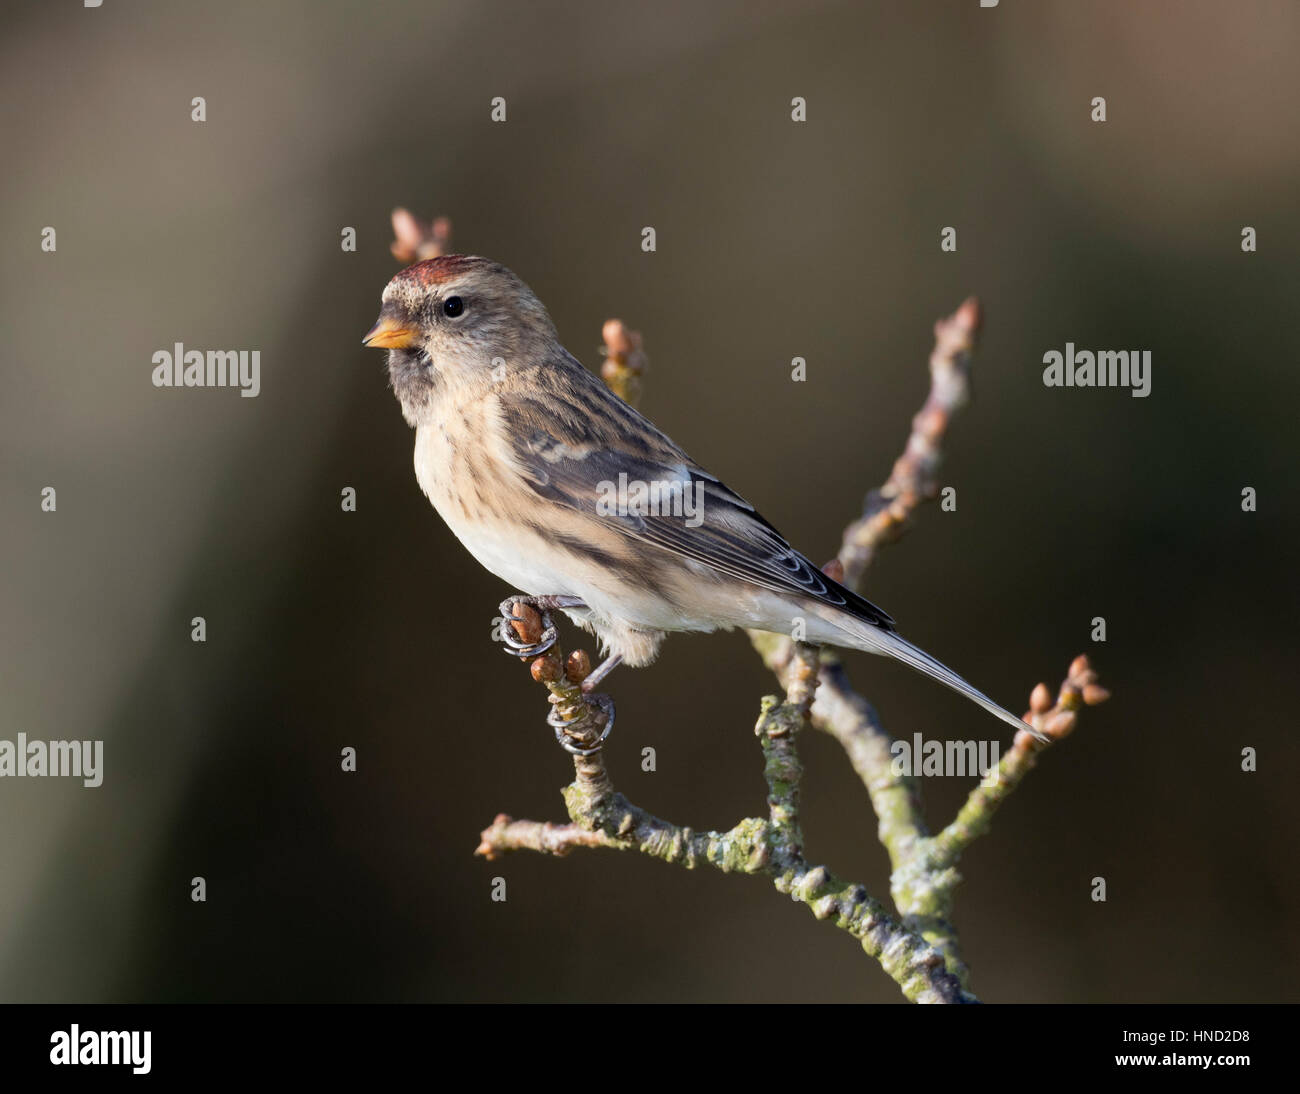 Redpoll (Carduelis flammea) on a lichen covered branch in the UK,winter,2017 - Stock Image